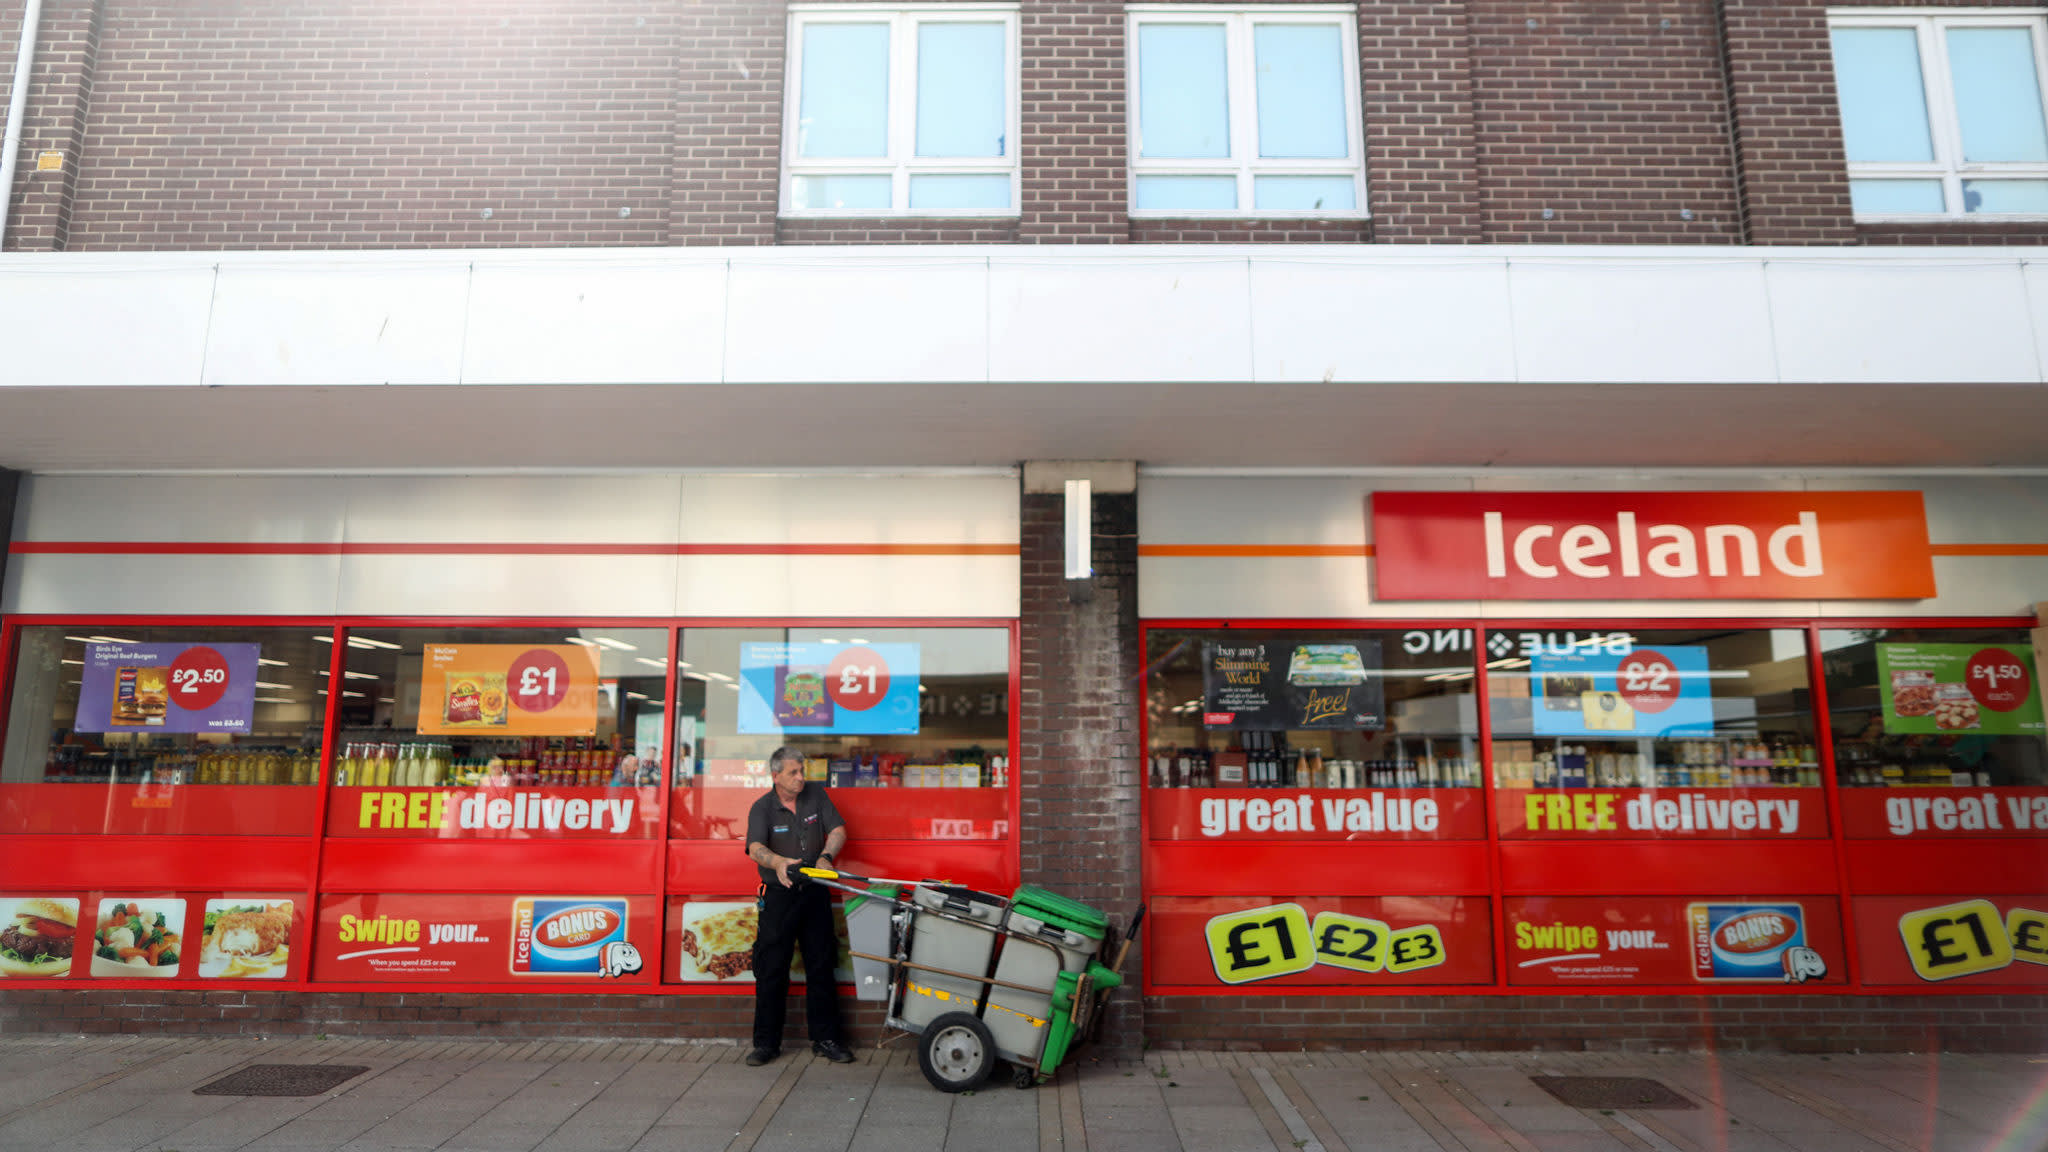 Supermarket sweep: Iceland sales rise 8% | Financial Times